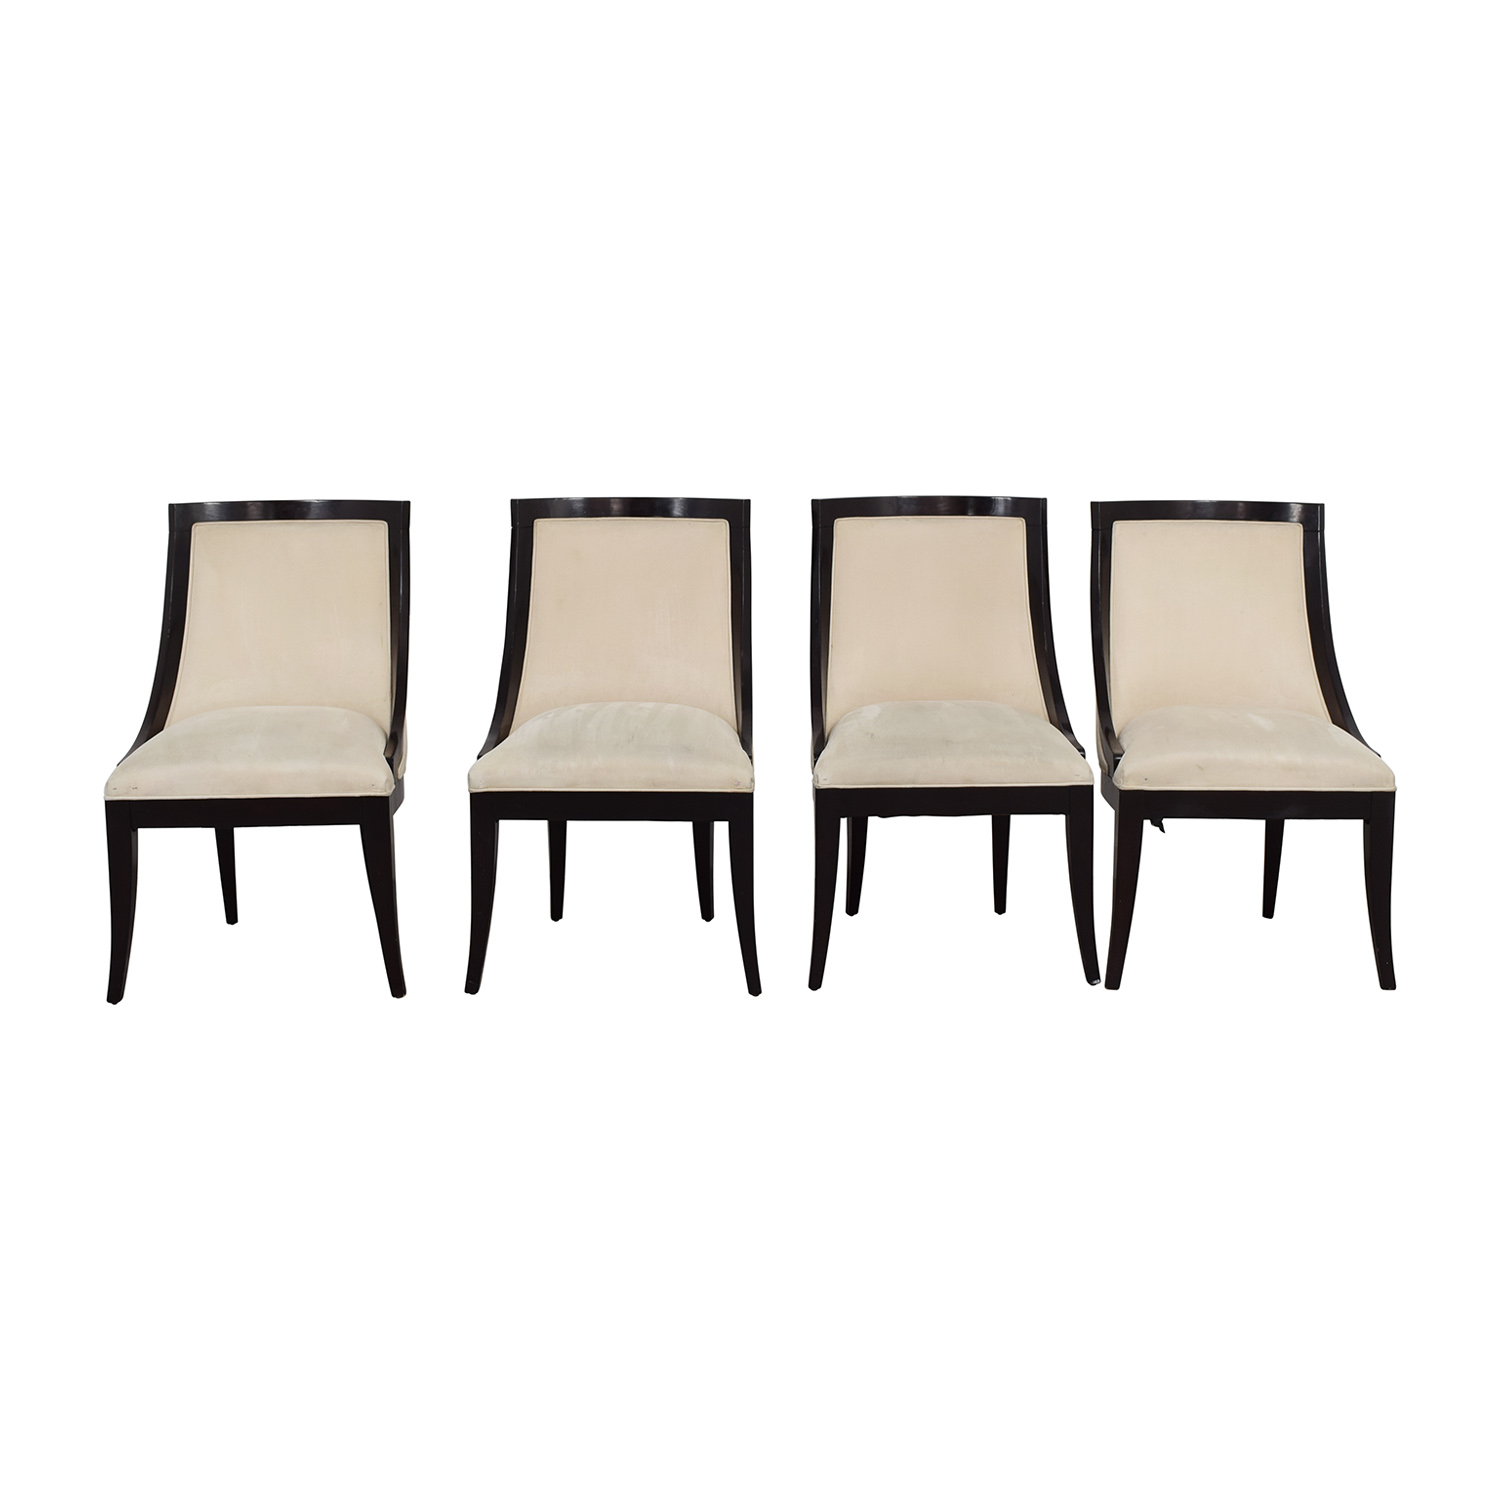 Restoration Hardware Restoration Hardware Cream Upholstered Dining Chairs